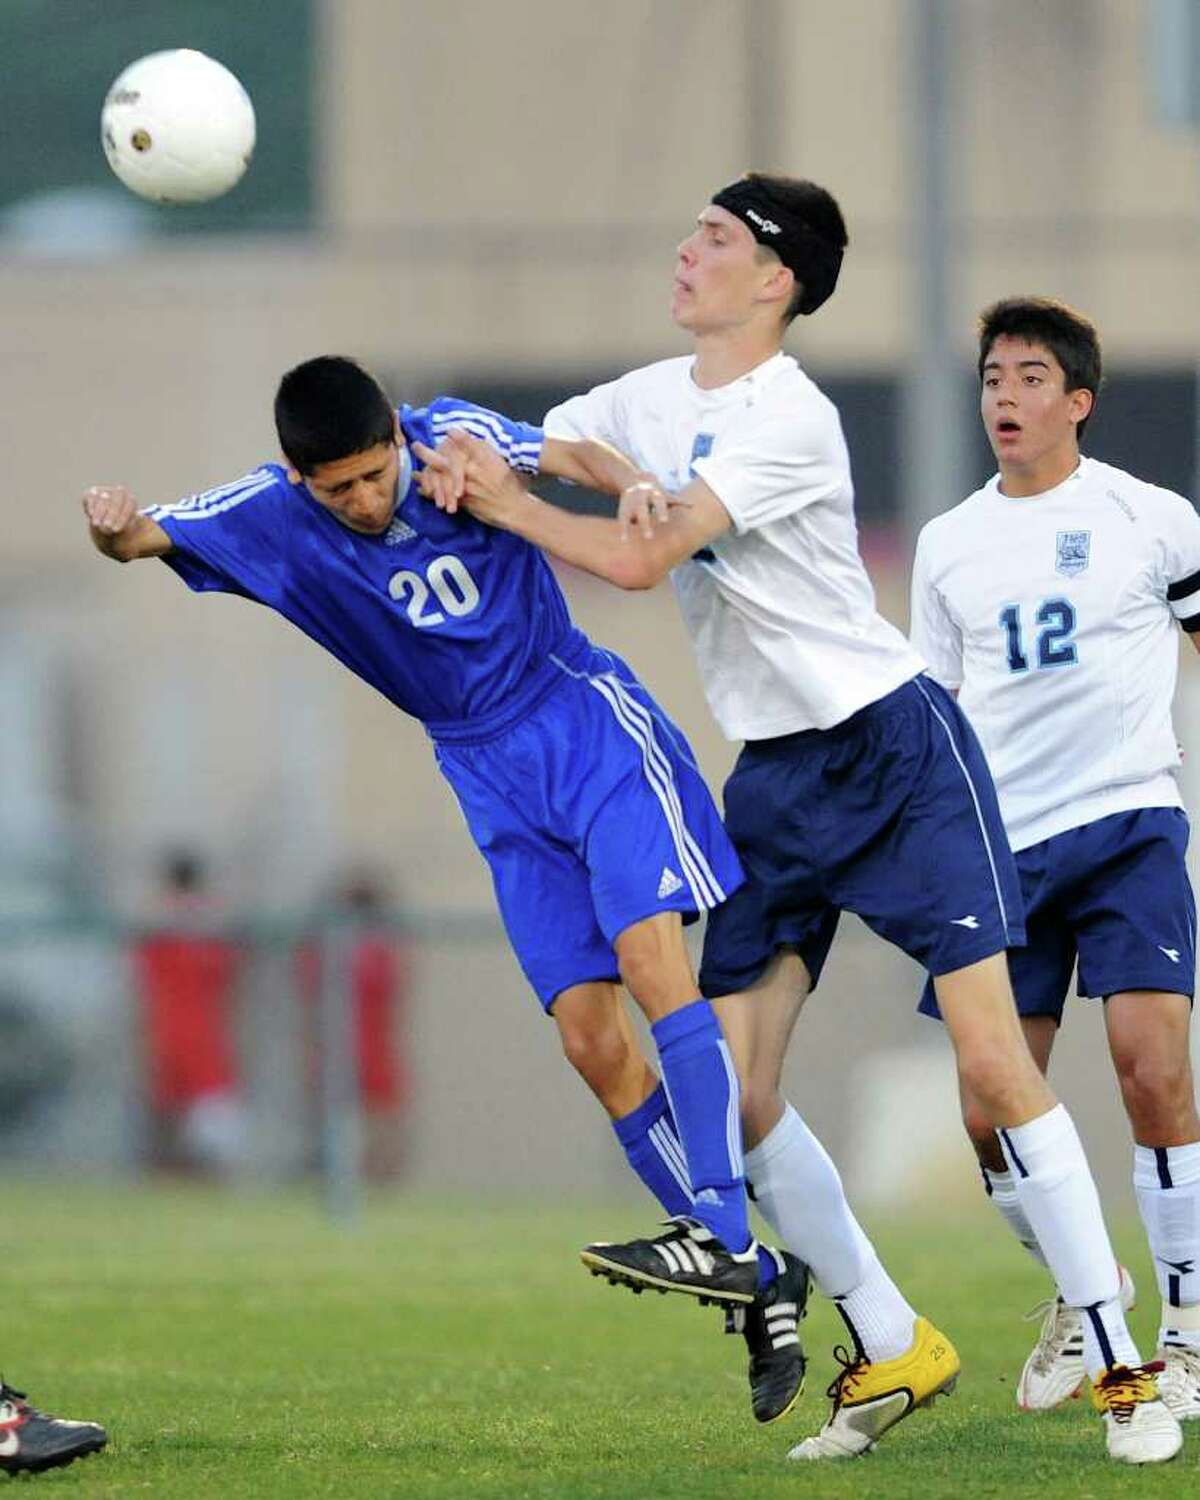 New Braunfels' Joseph Luna (20) and Johnson's Nathan Drouillard (right) collide during a bidistrict playoff match between the Johnson Jaguars and the New Braunfels Unicorns at the Blossom Athletic Center West Soccer Field on Monday, April 2, 2012.